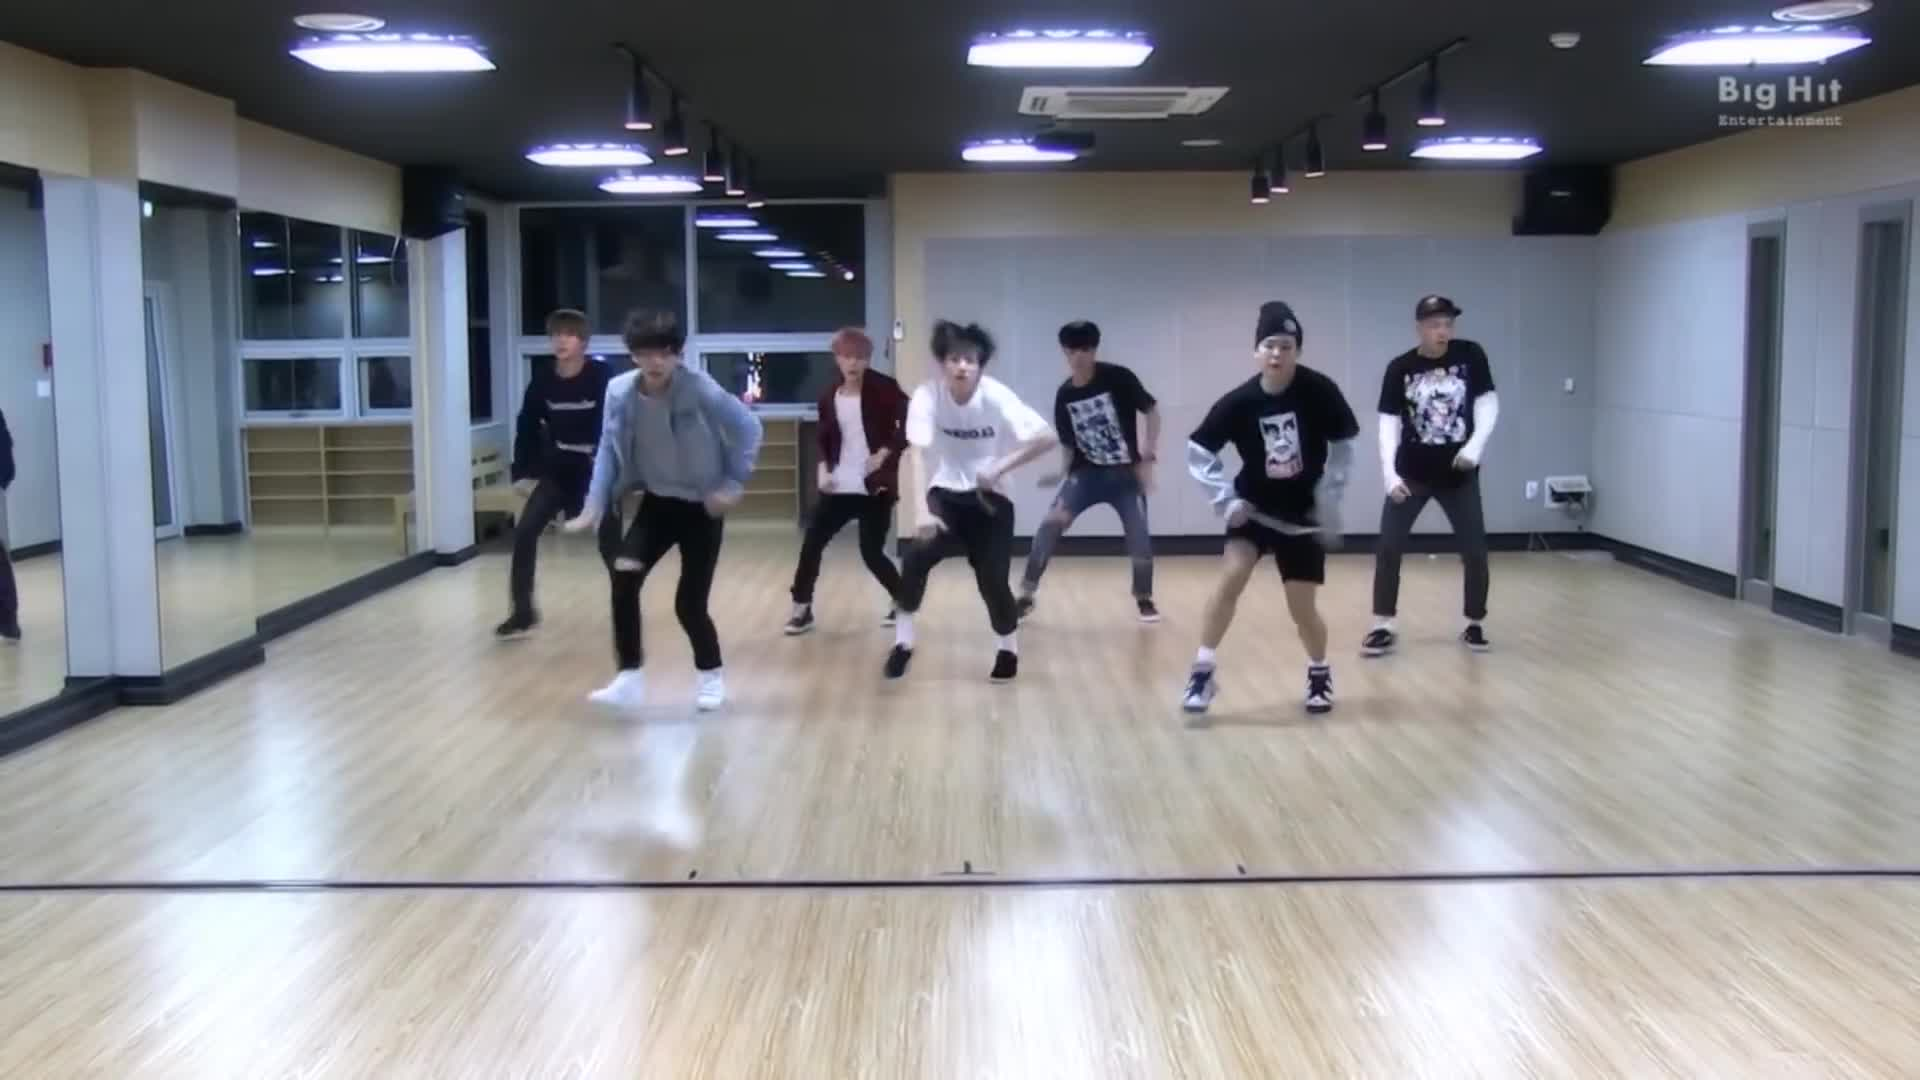 Bts Dance Gifs Search | Search & Share on Homdor